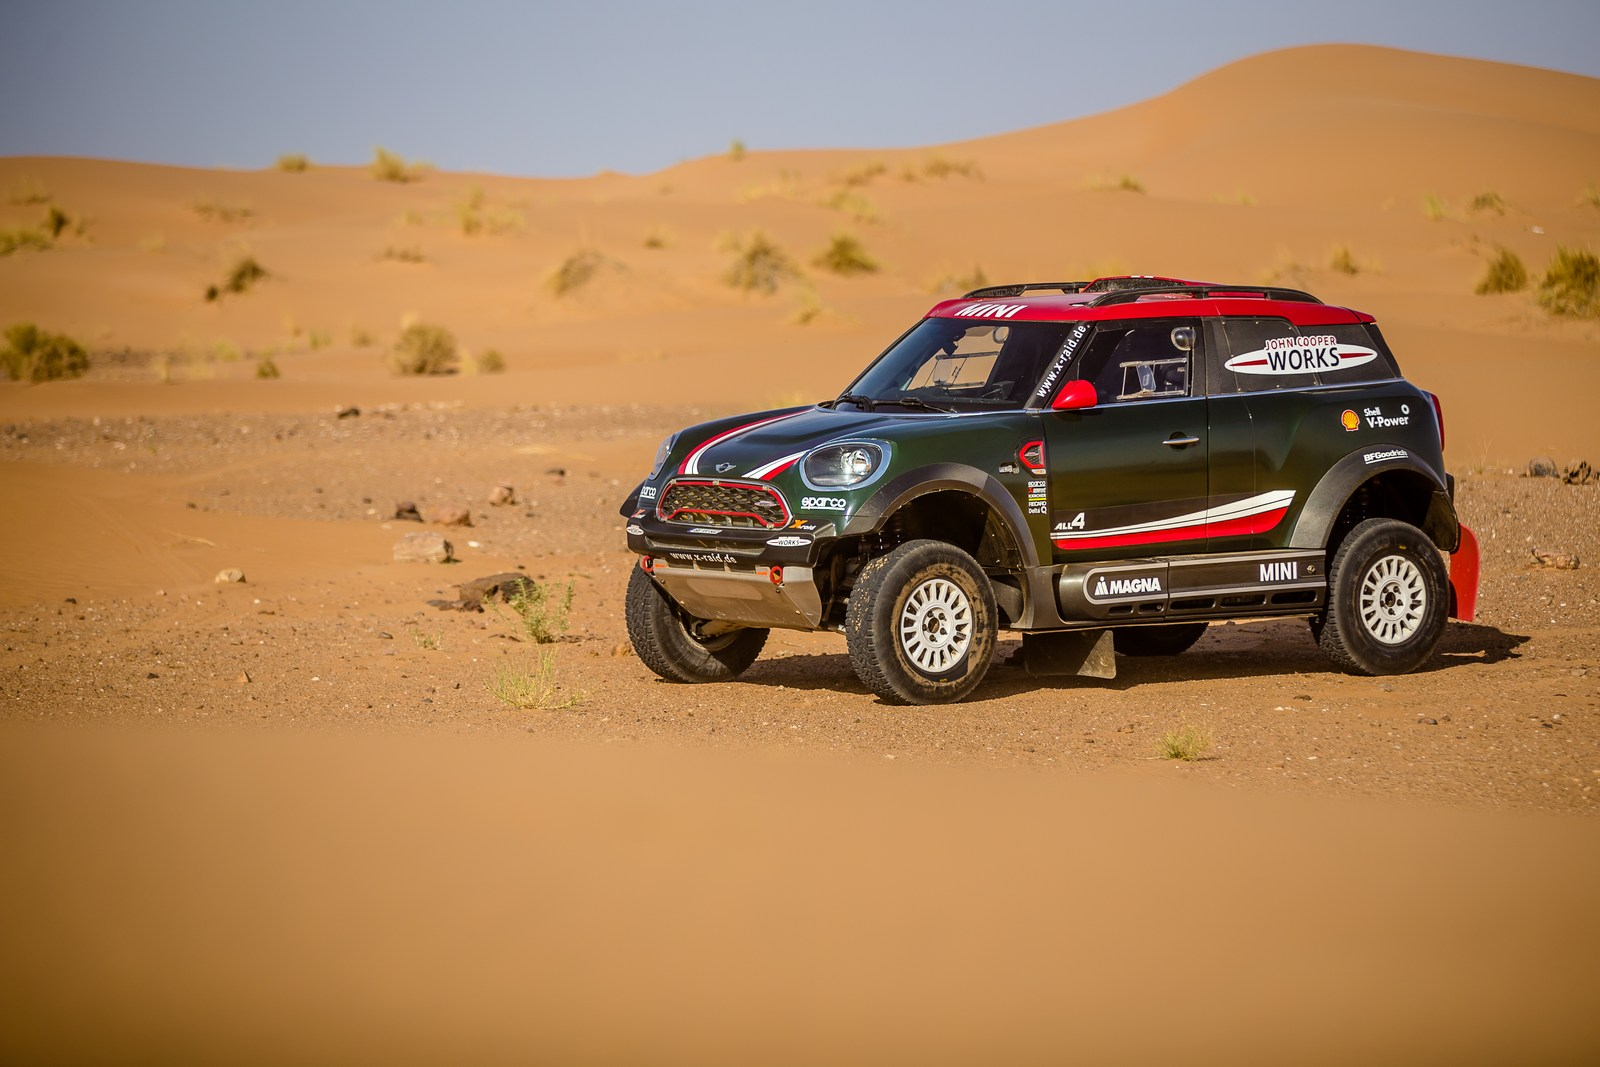 Mini John Cooper Works Buggy Revealed For The Dakar Rally